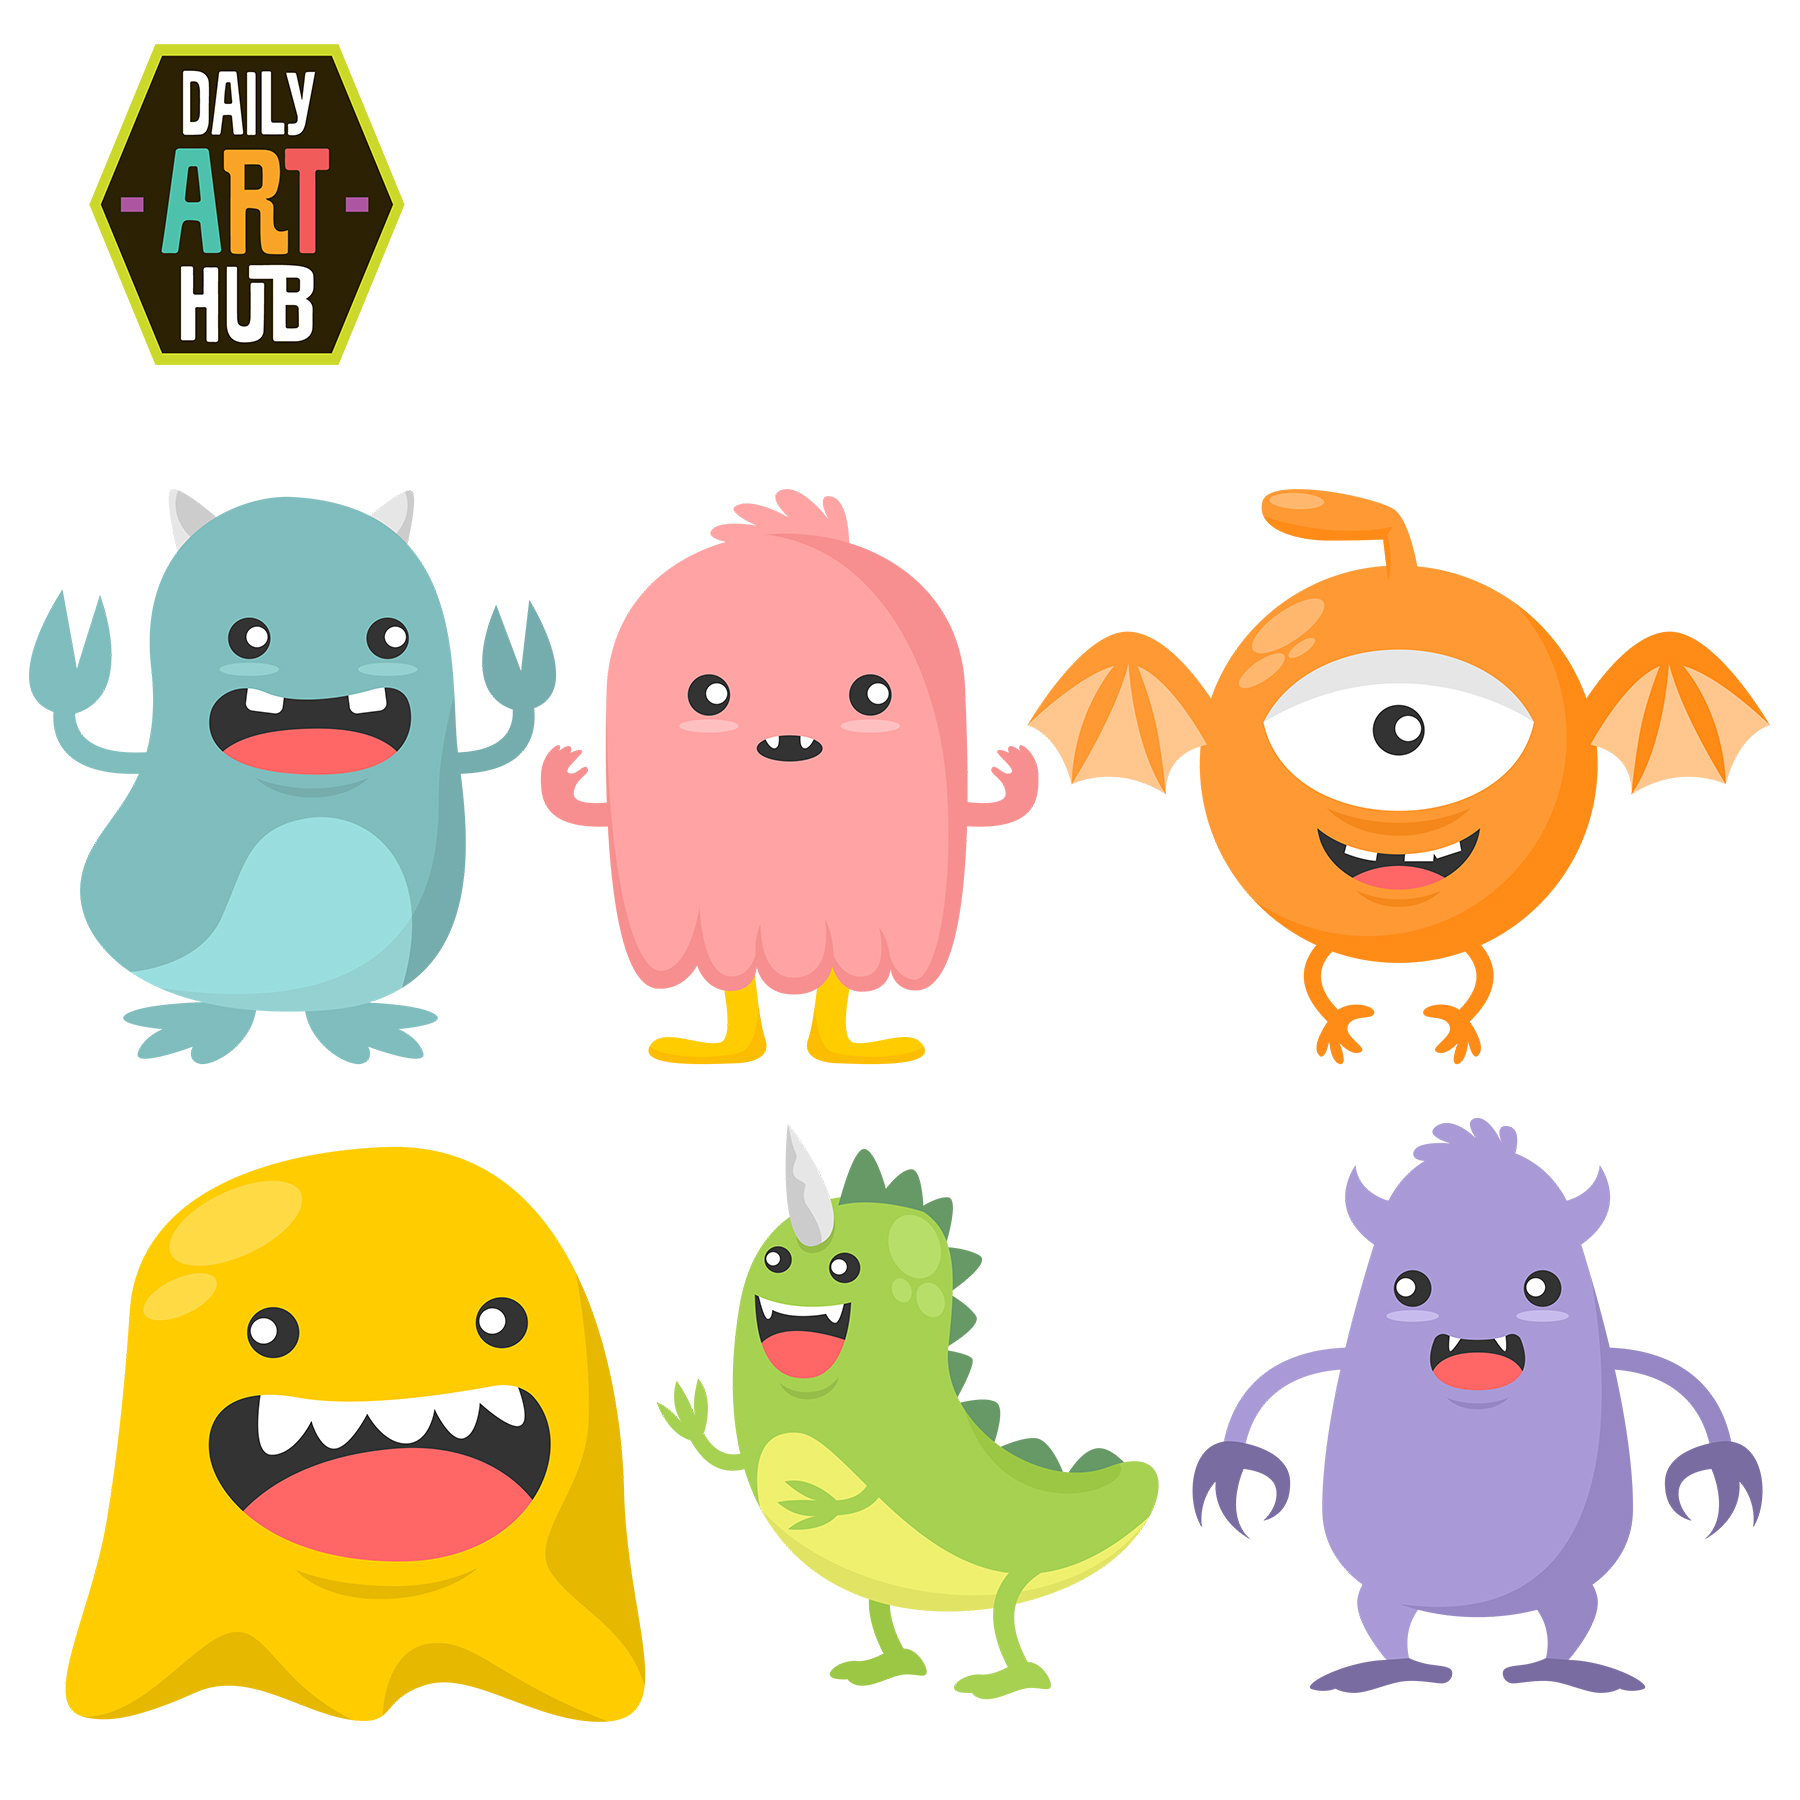 monsters cute clip halloween monster clipart cartoons alien scary birthday hub character head dailyarthub